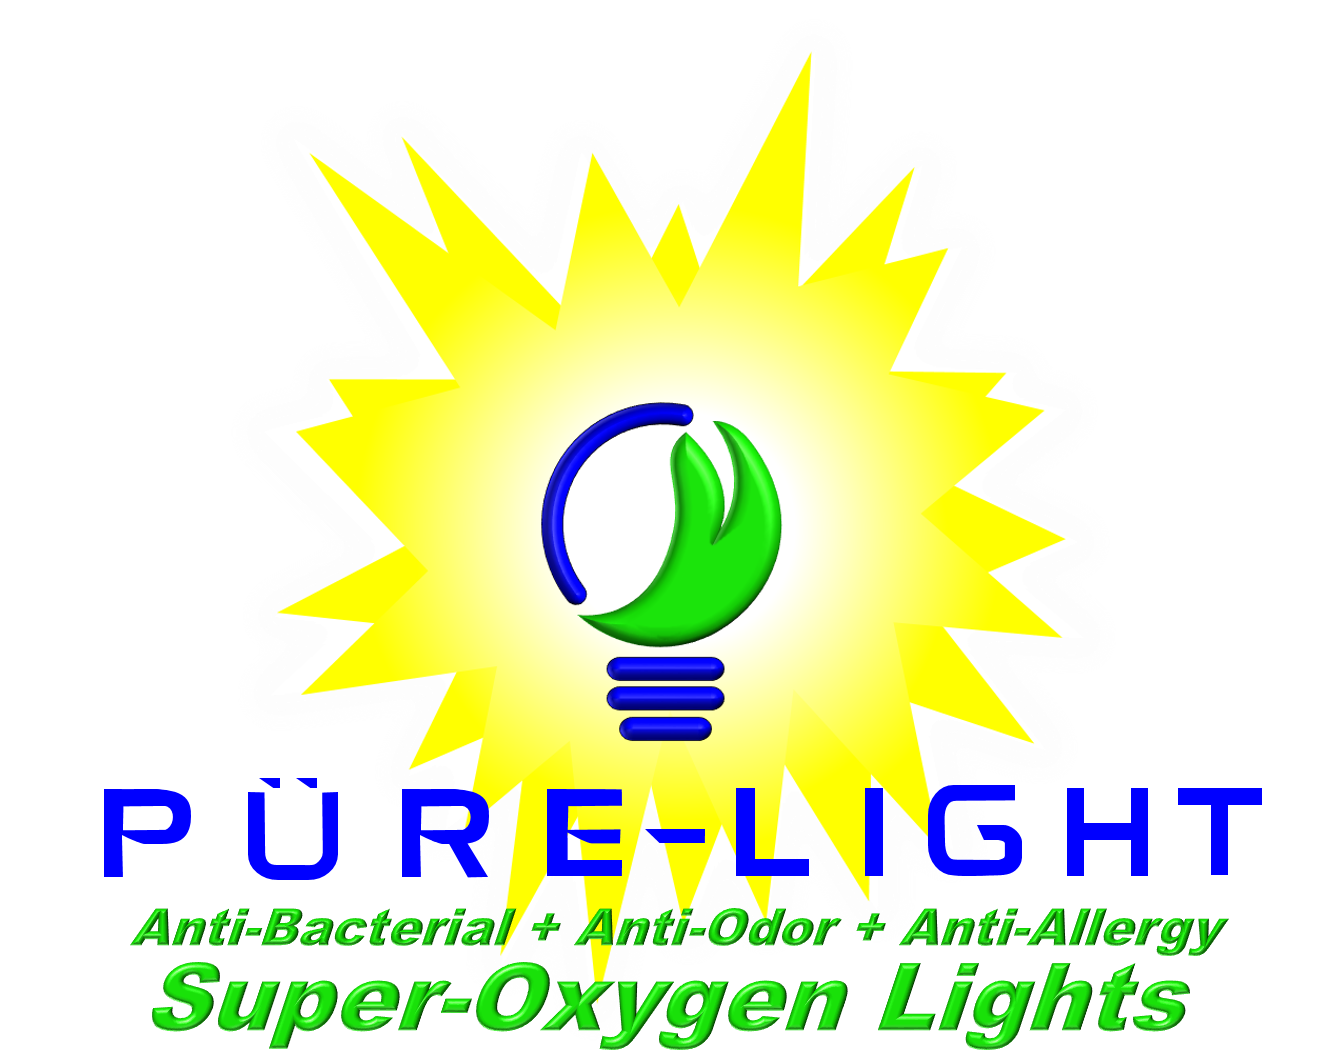 http://www.pure-light.com/uploads/SHIRT%20LOGO%201.png